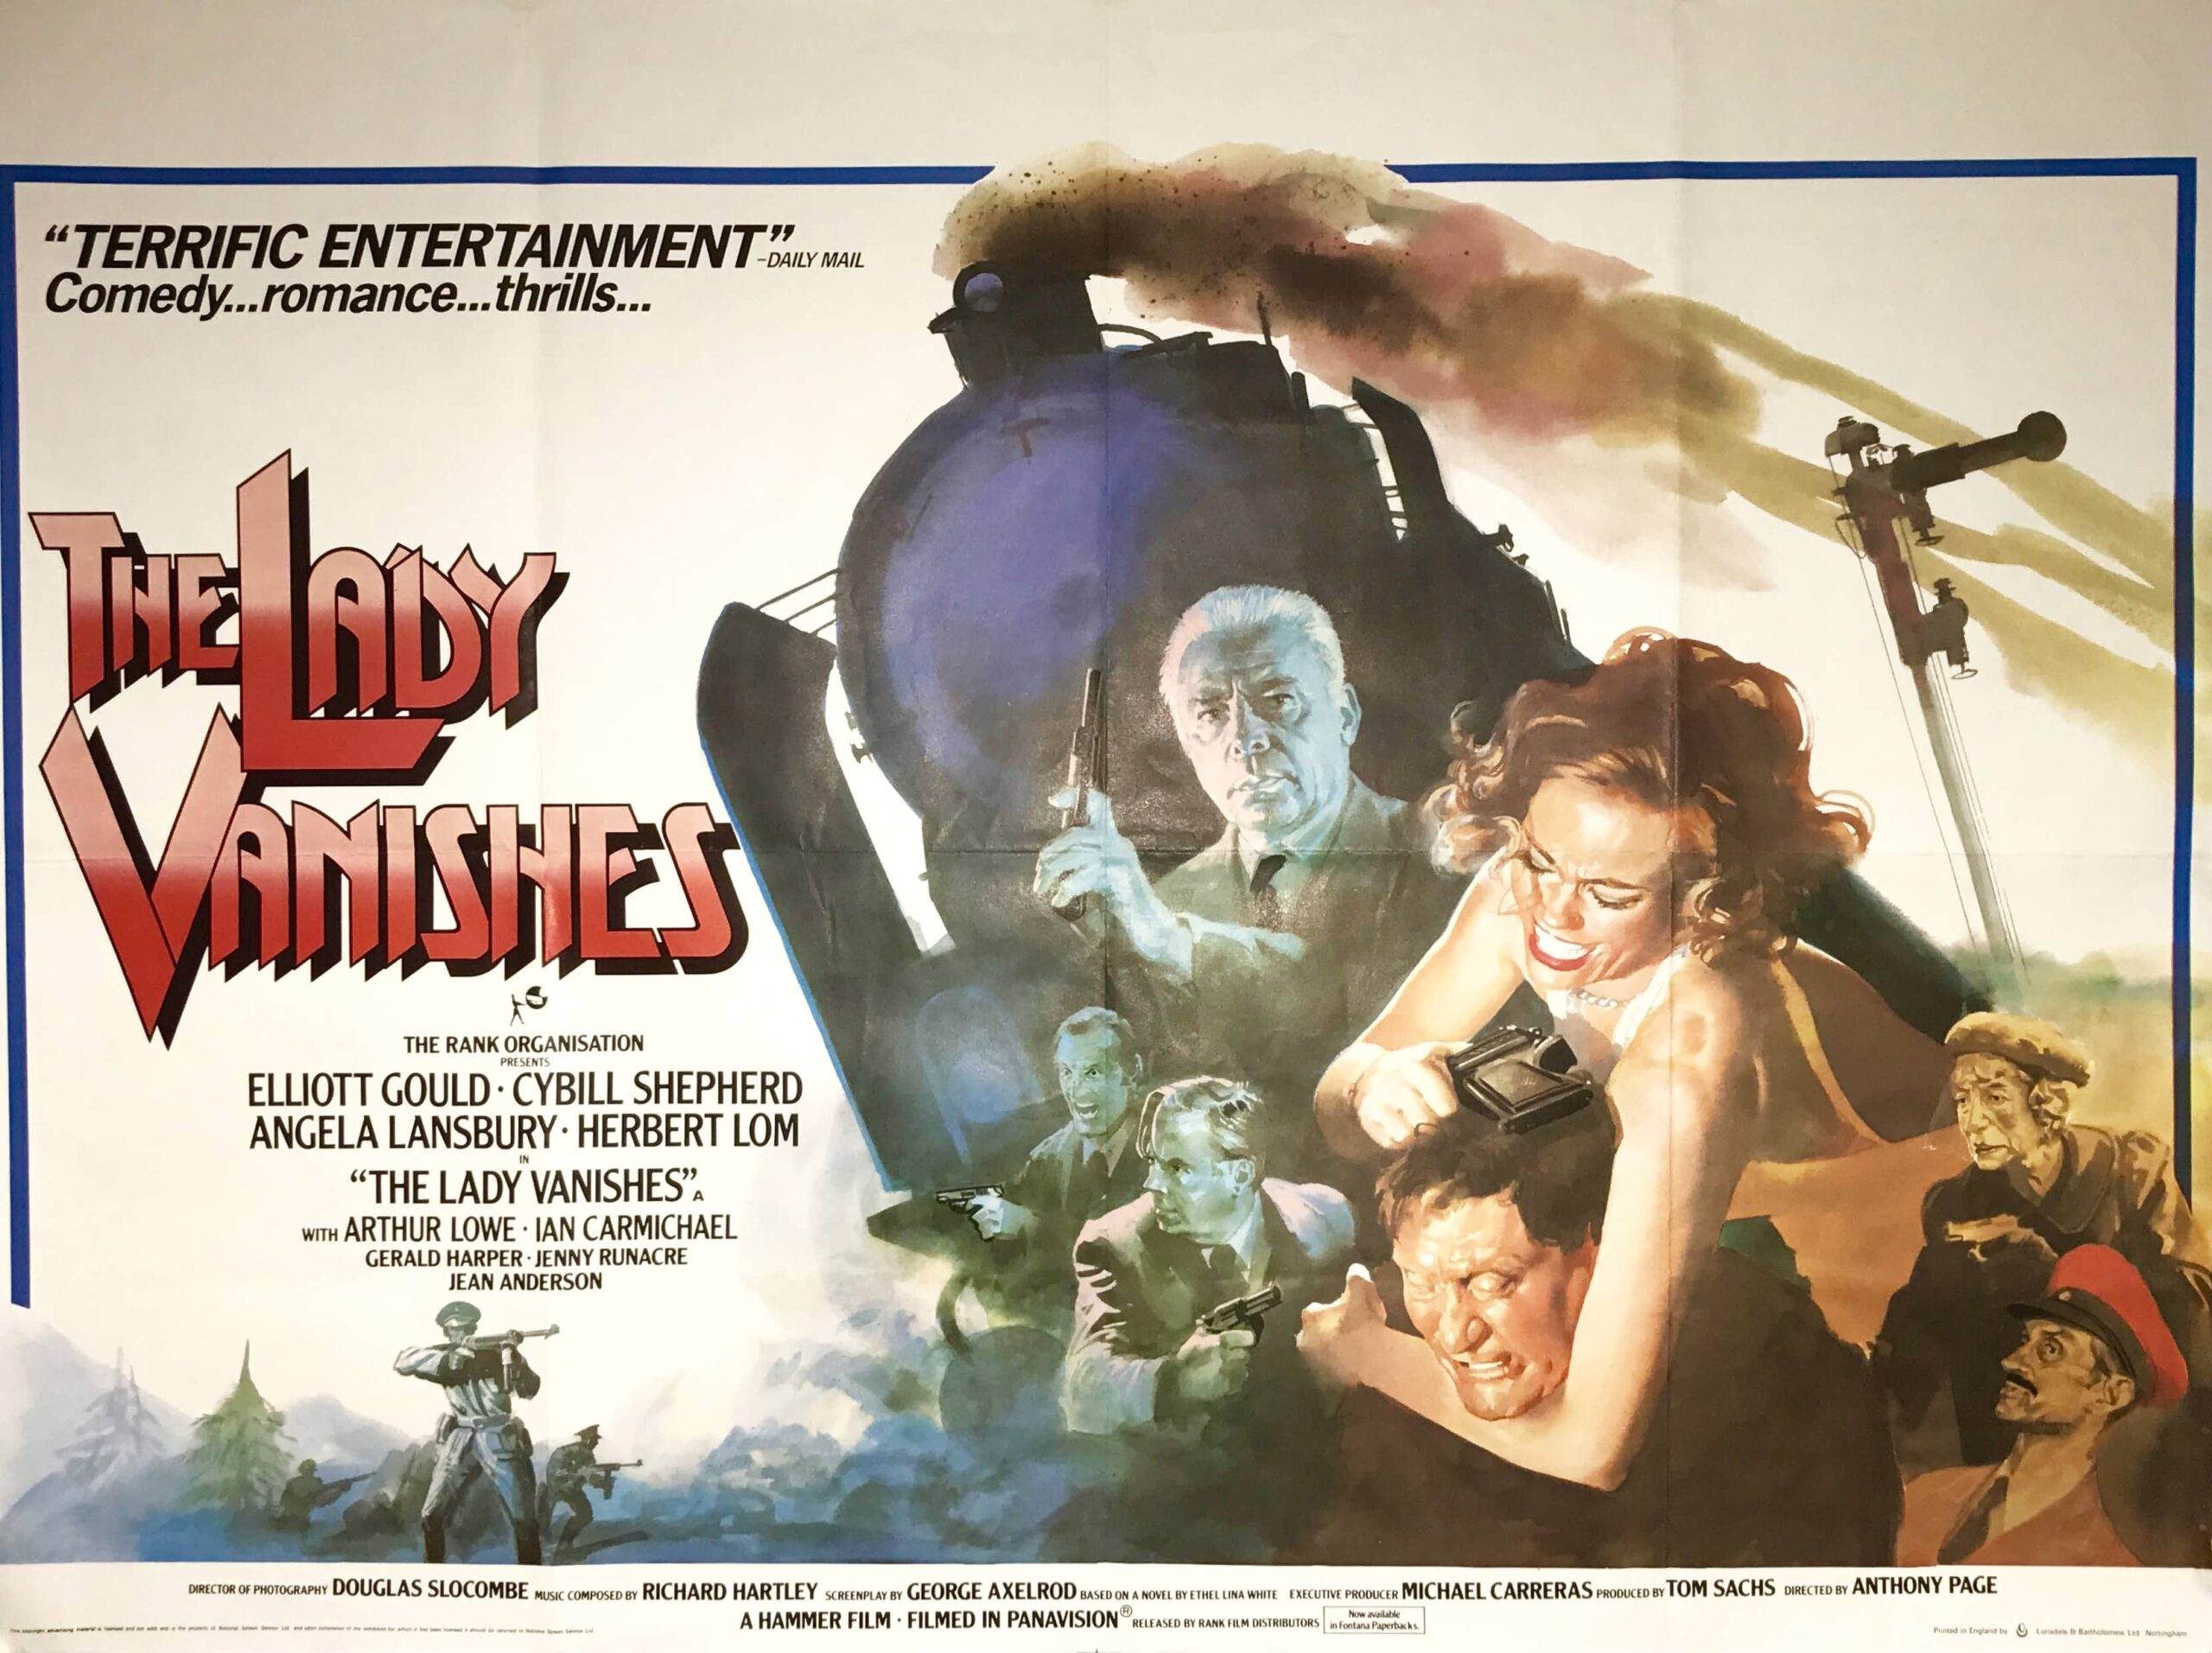 The Lady Vanishes (1979) UK poster